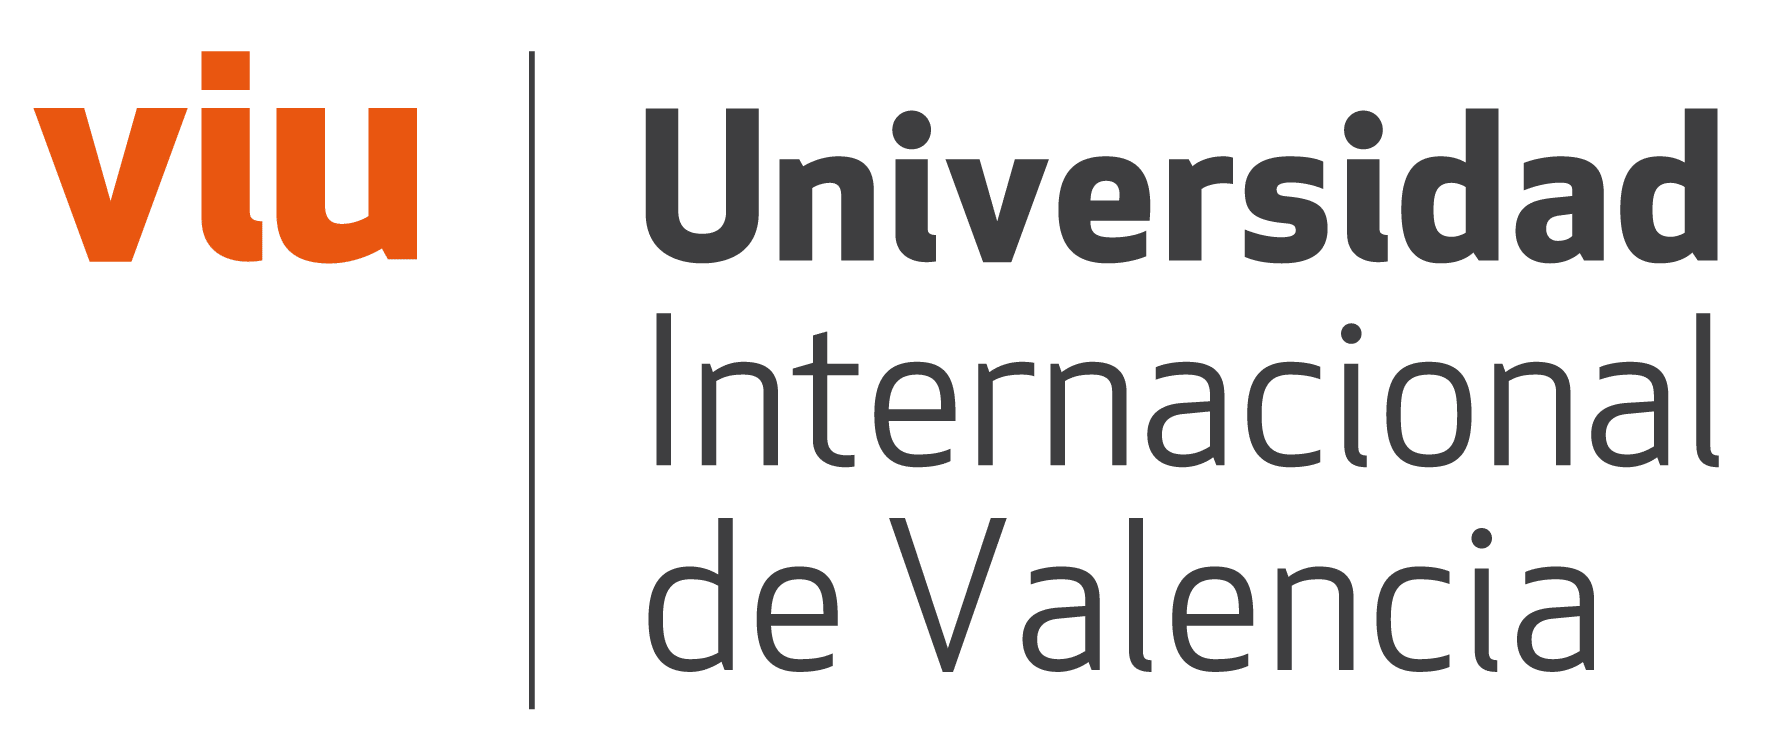 universidad-internacional-de-valencia